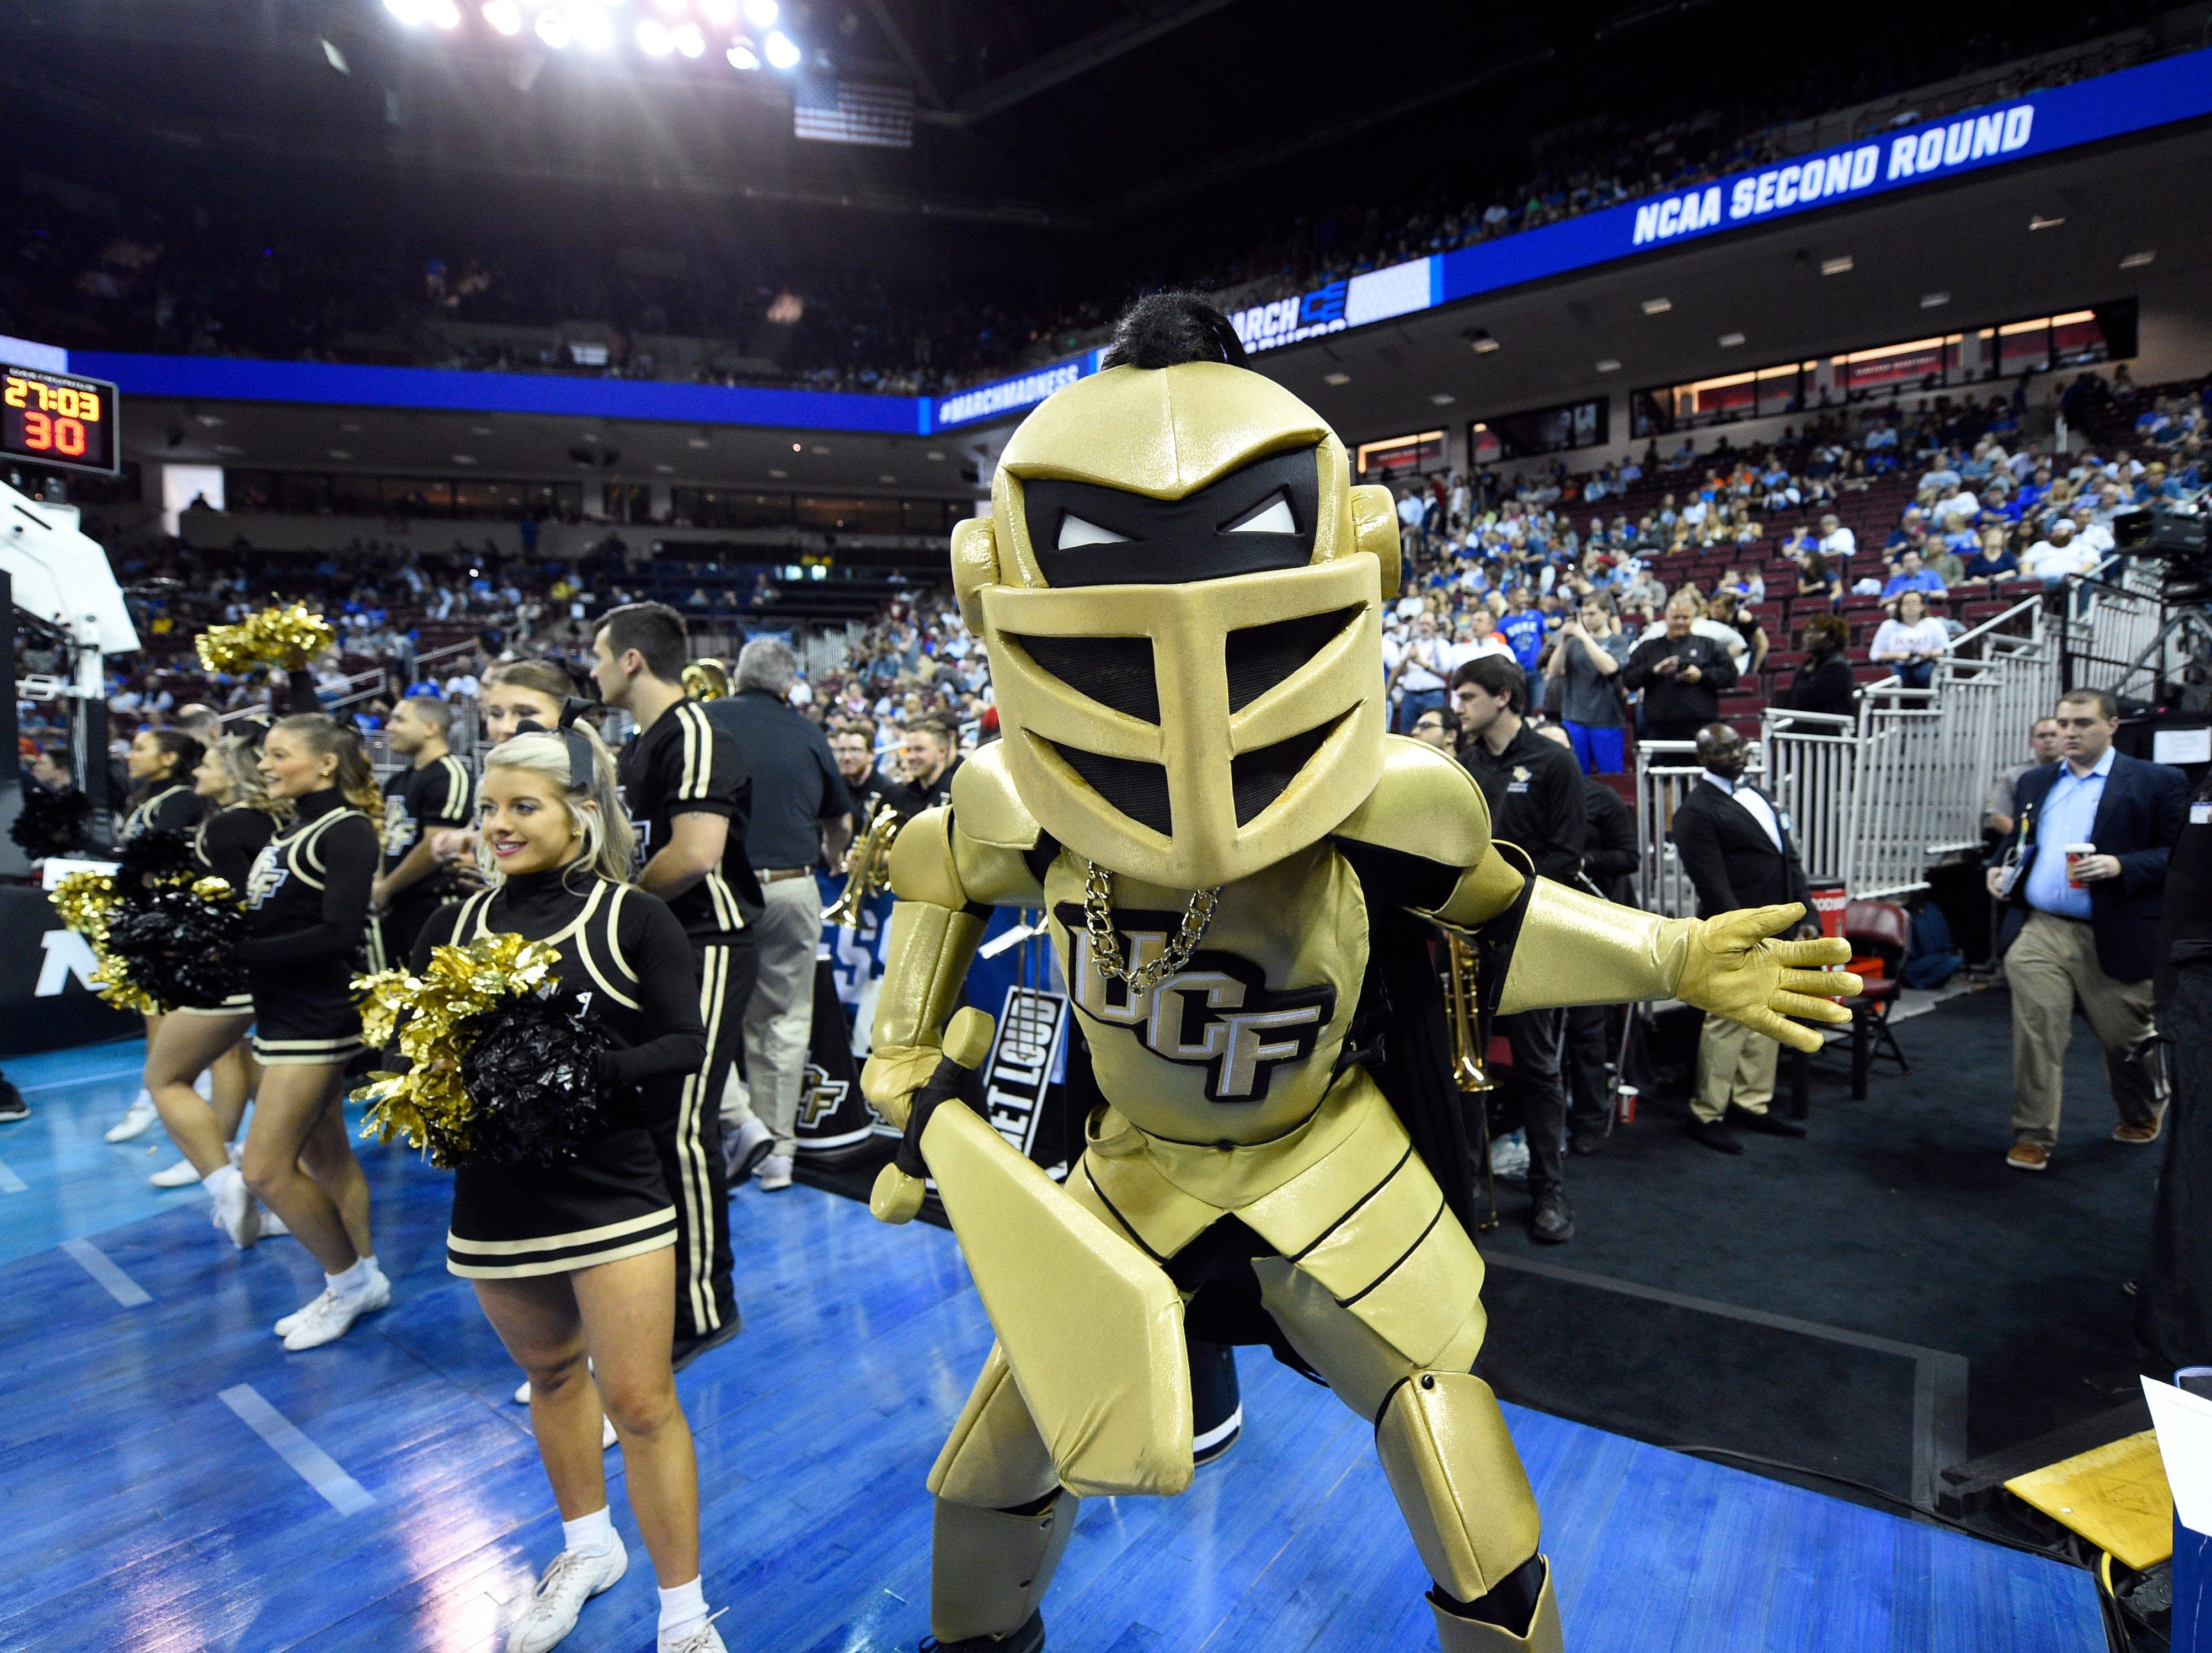 The UCF Knights mascot ... Knightro.